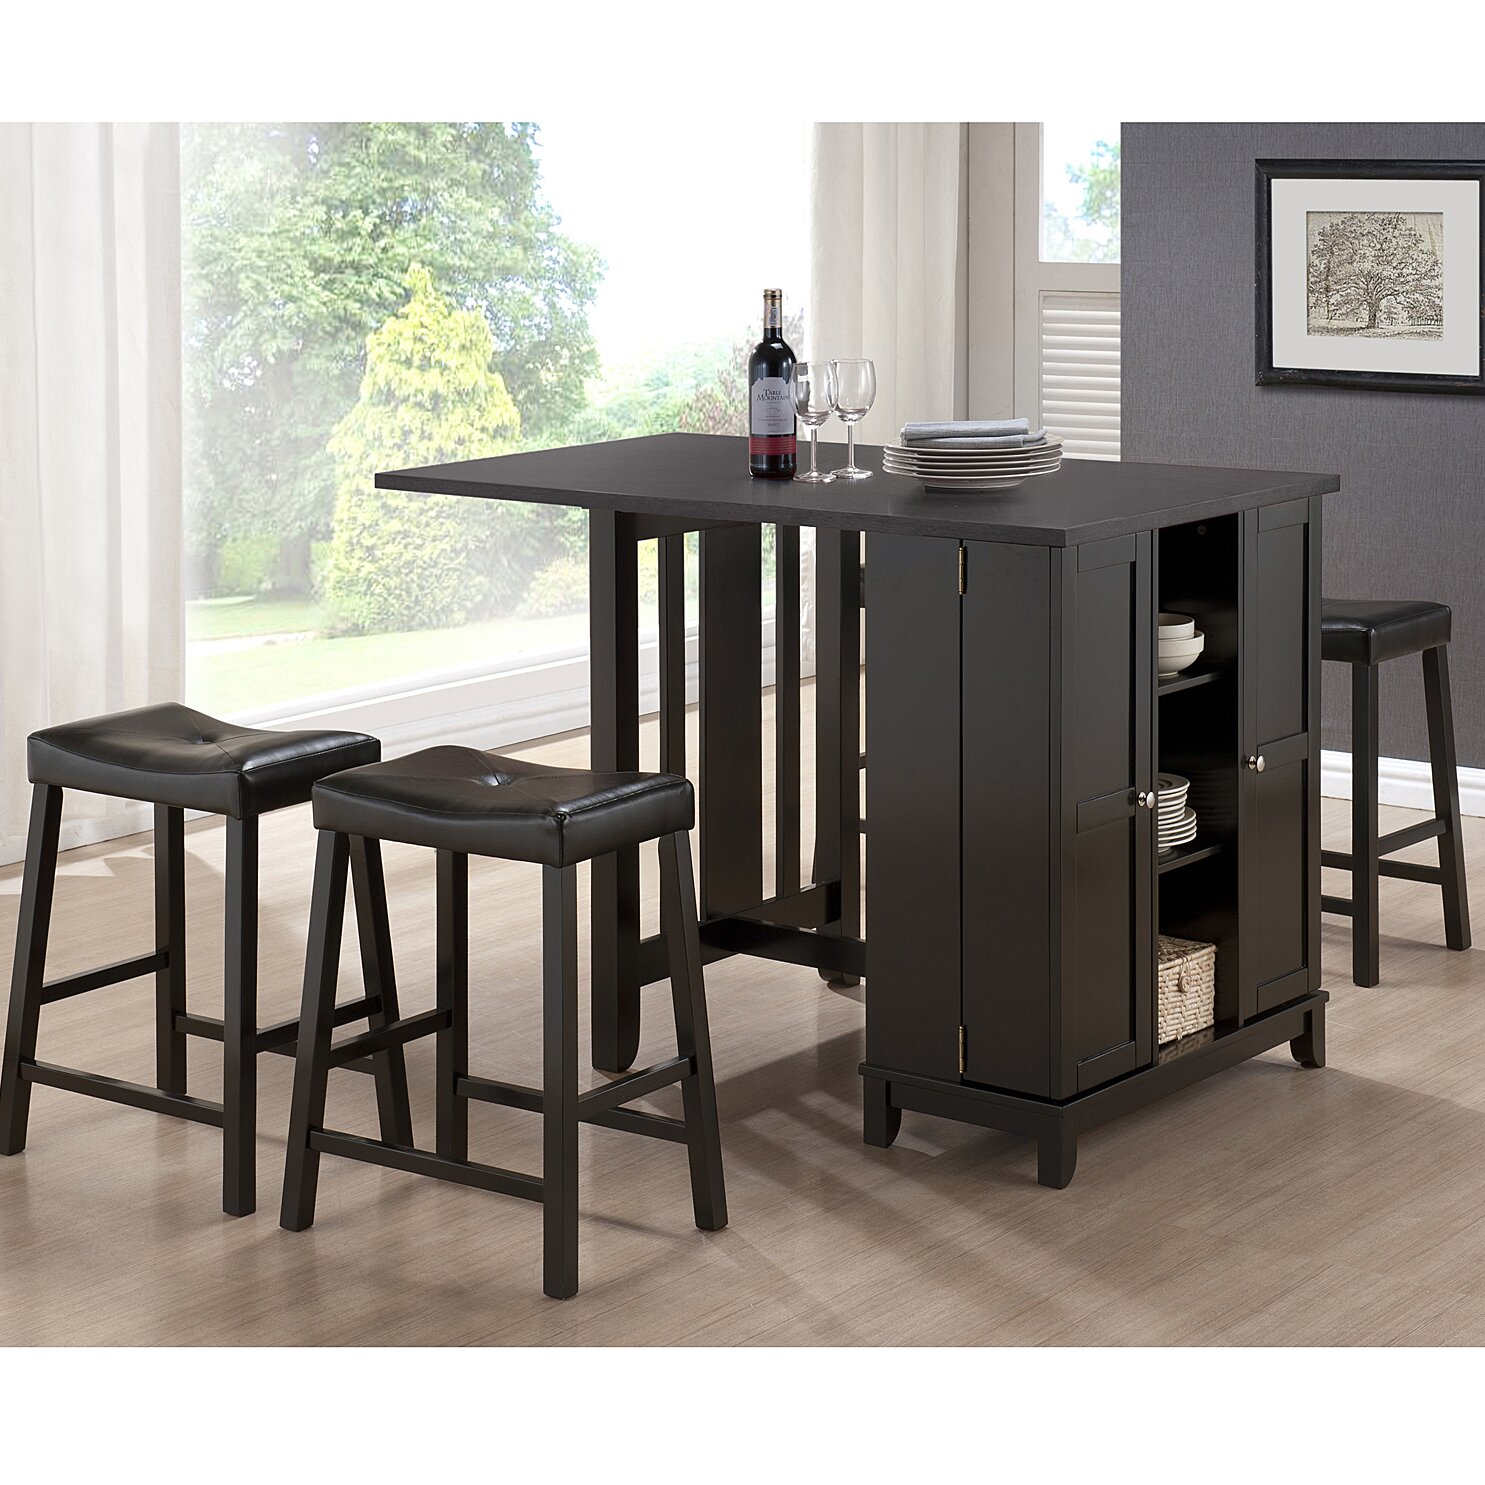 Dining Room Shelving And Storage: Wholesale Interiors Baxton Studio Aurora 5 Piece Dining